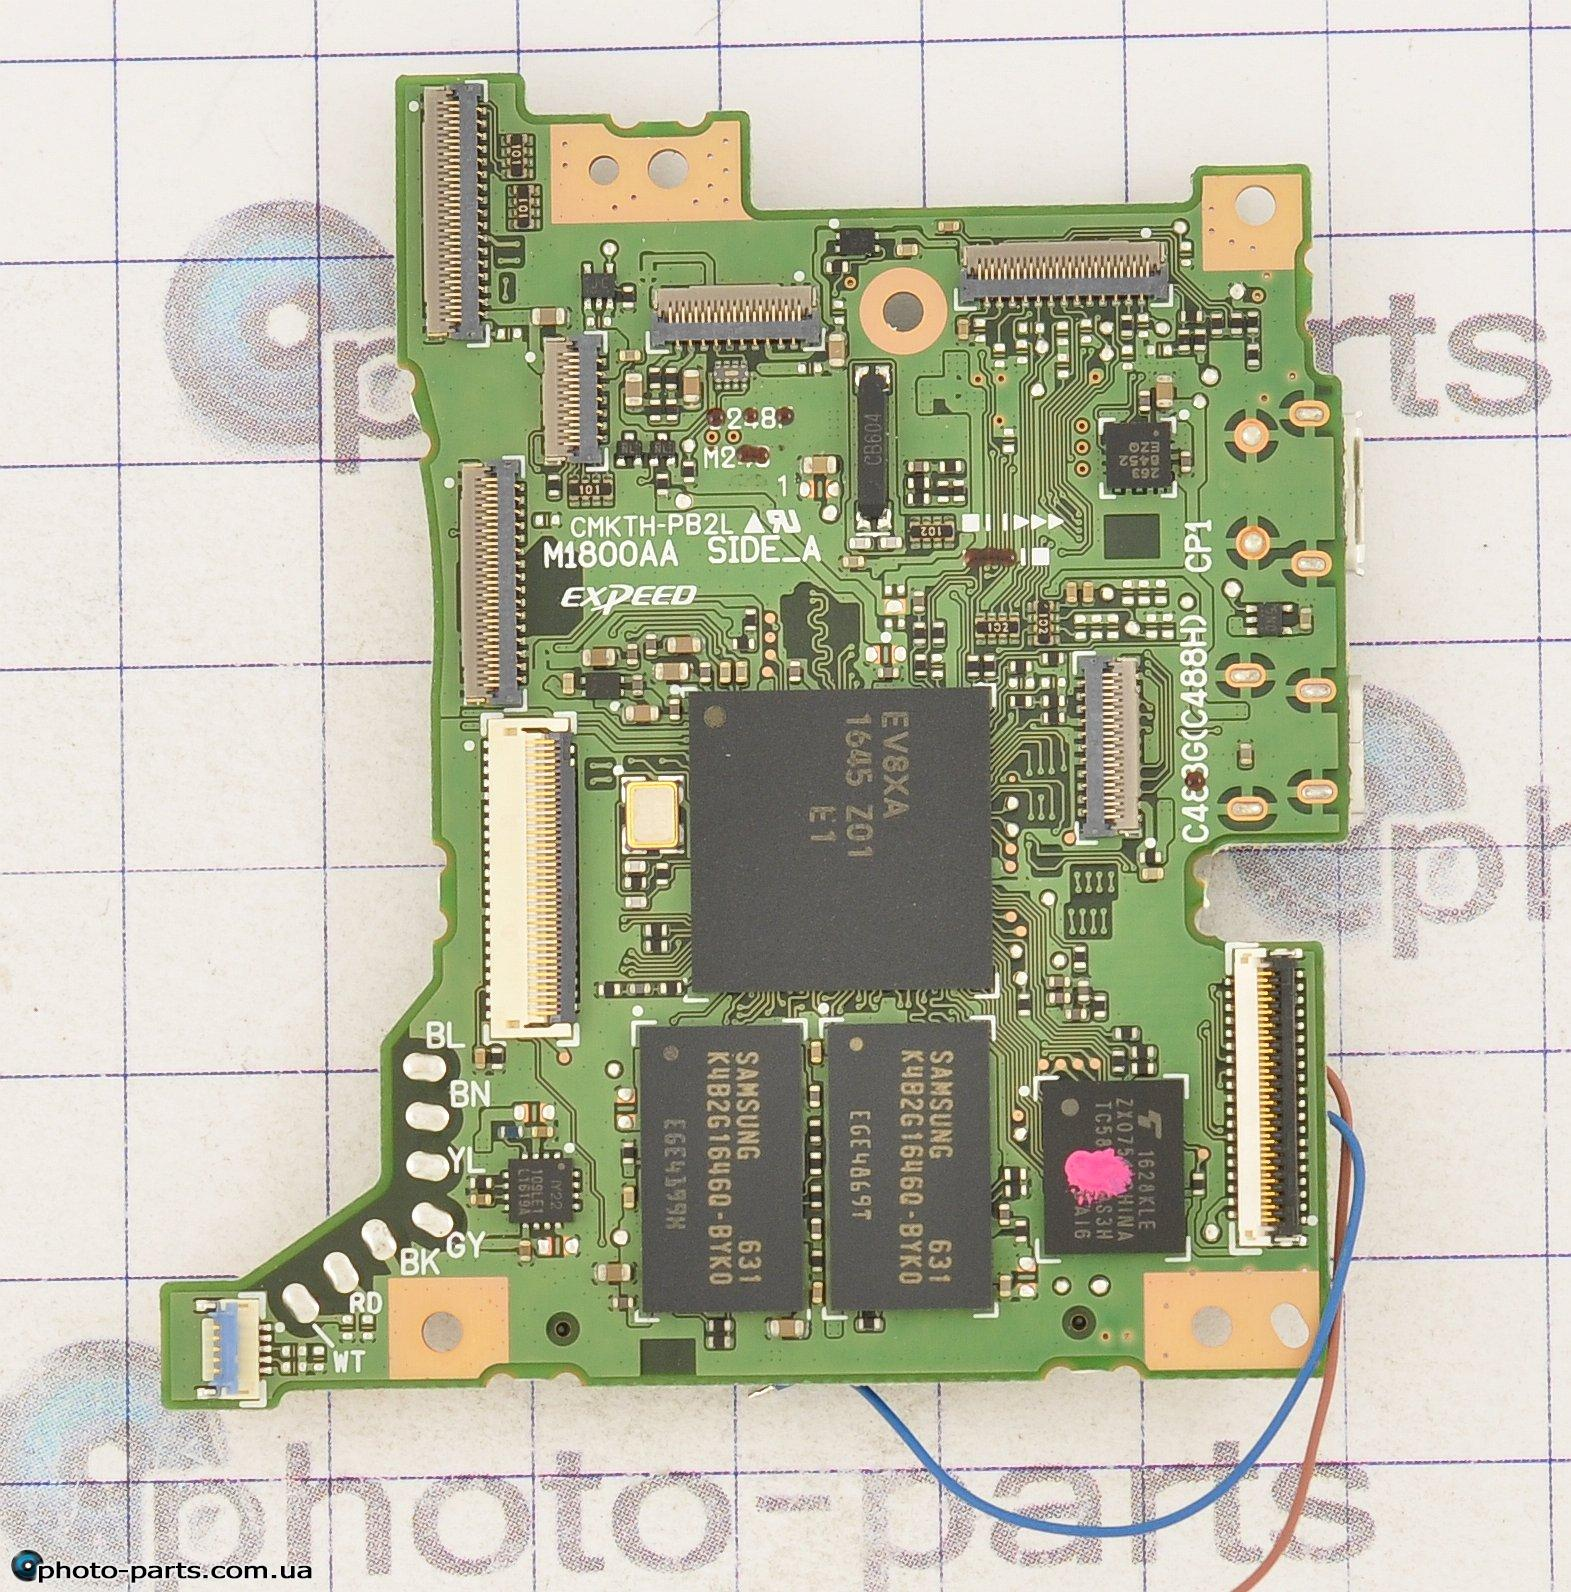 Photo Parts The Internal Structure Of Digital Cameras Nikon Camera Diagram P900 Pcb 636 173 5391